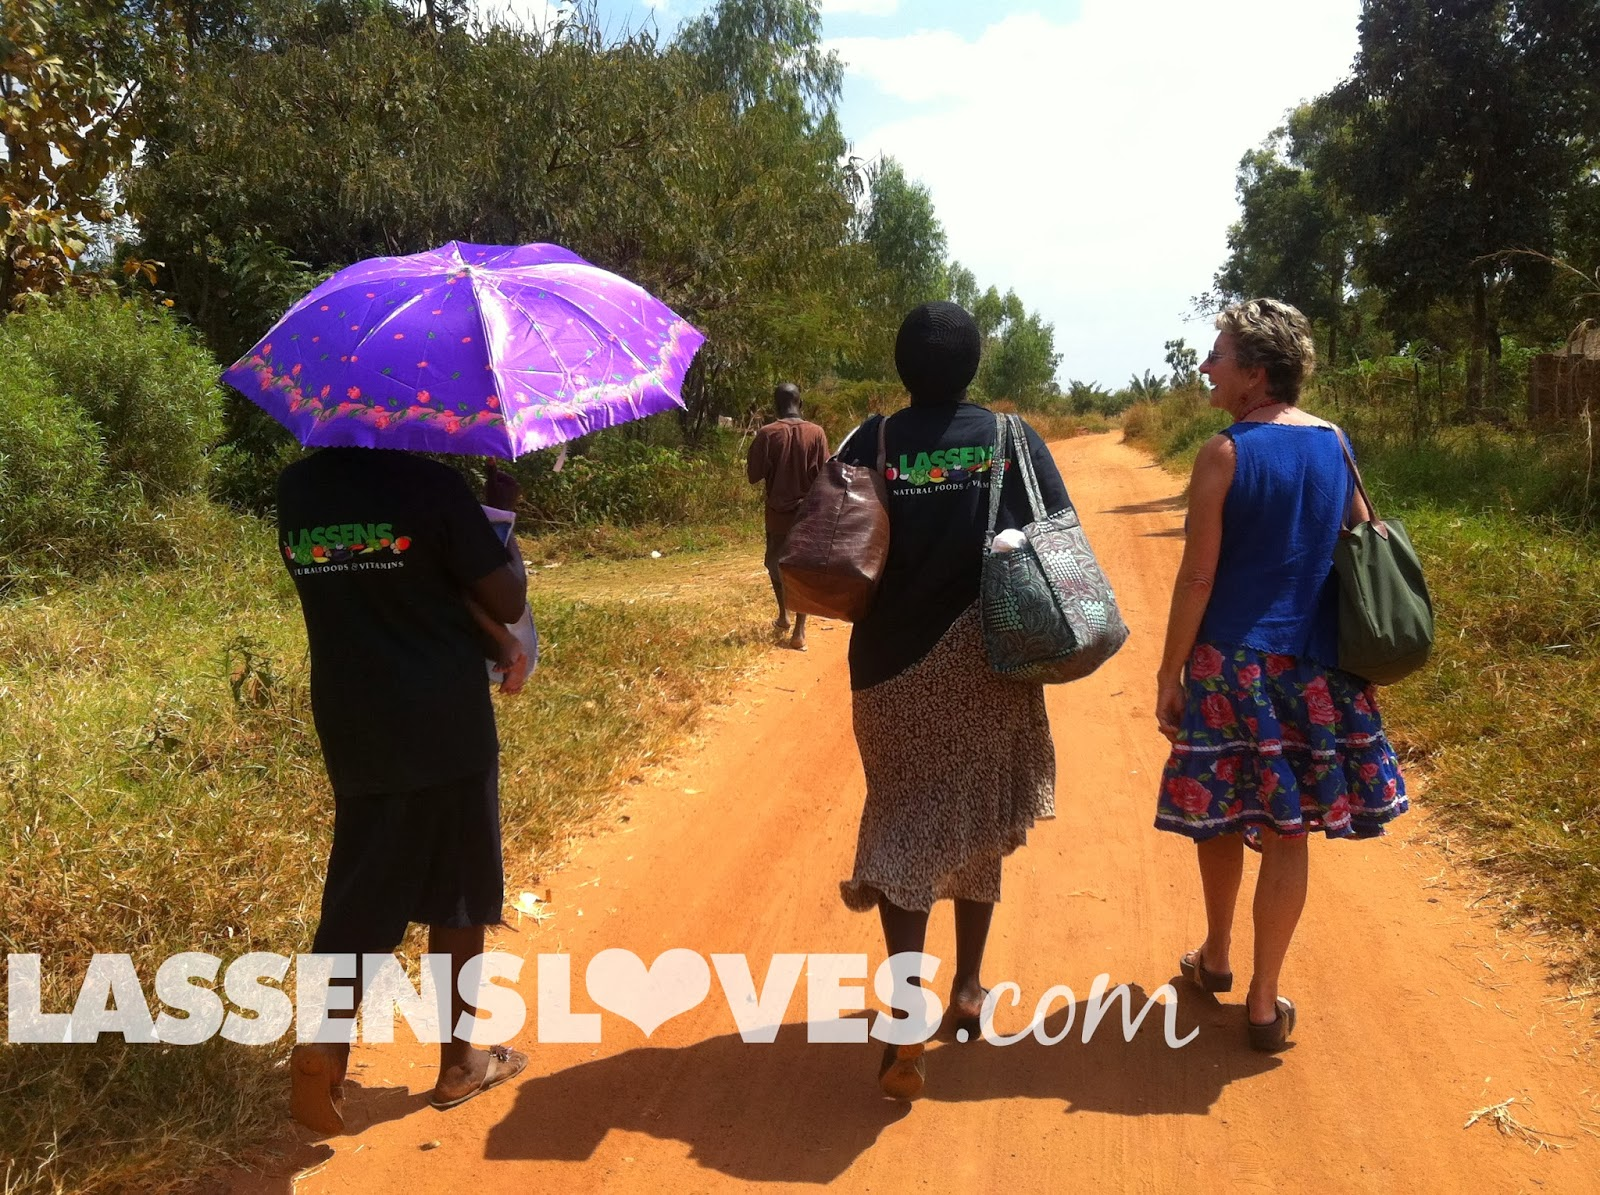 lassensloves.com, Lassen's, Beads+of+Hope, Women+of+Peace, Gulu+Uganda, thrive+gulu